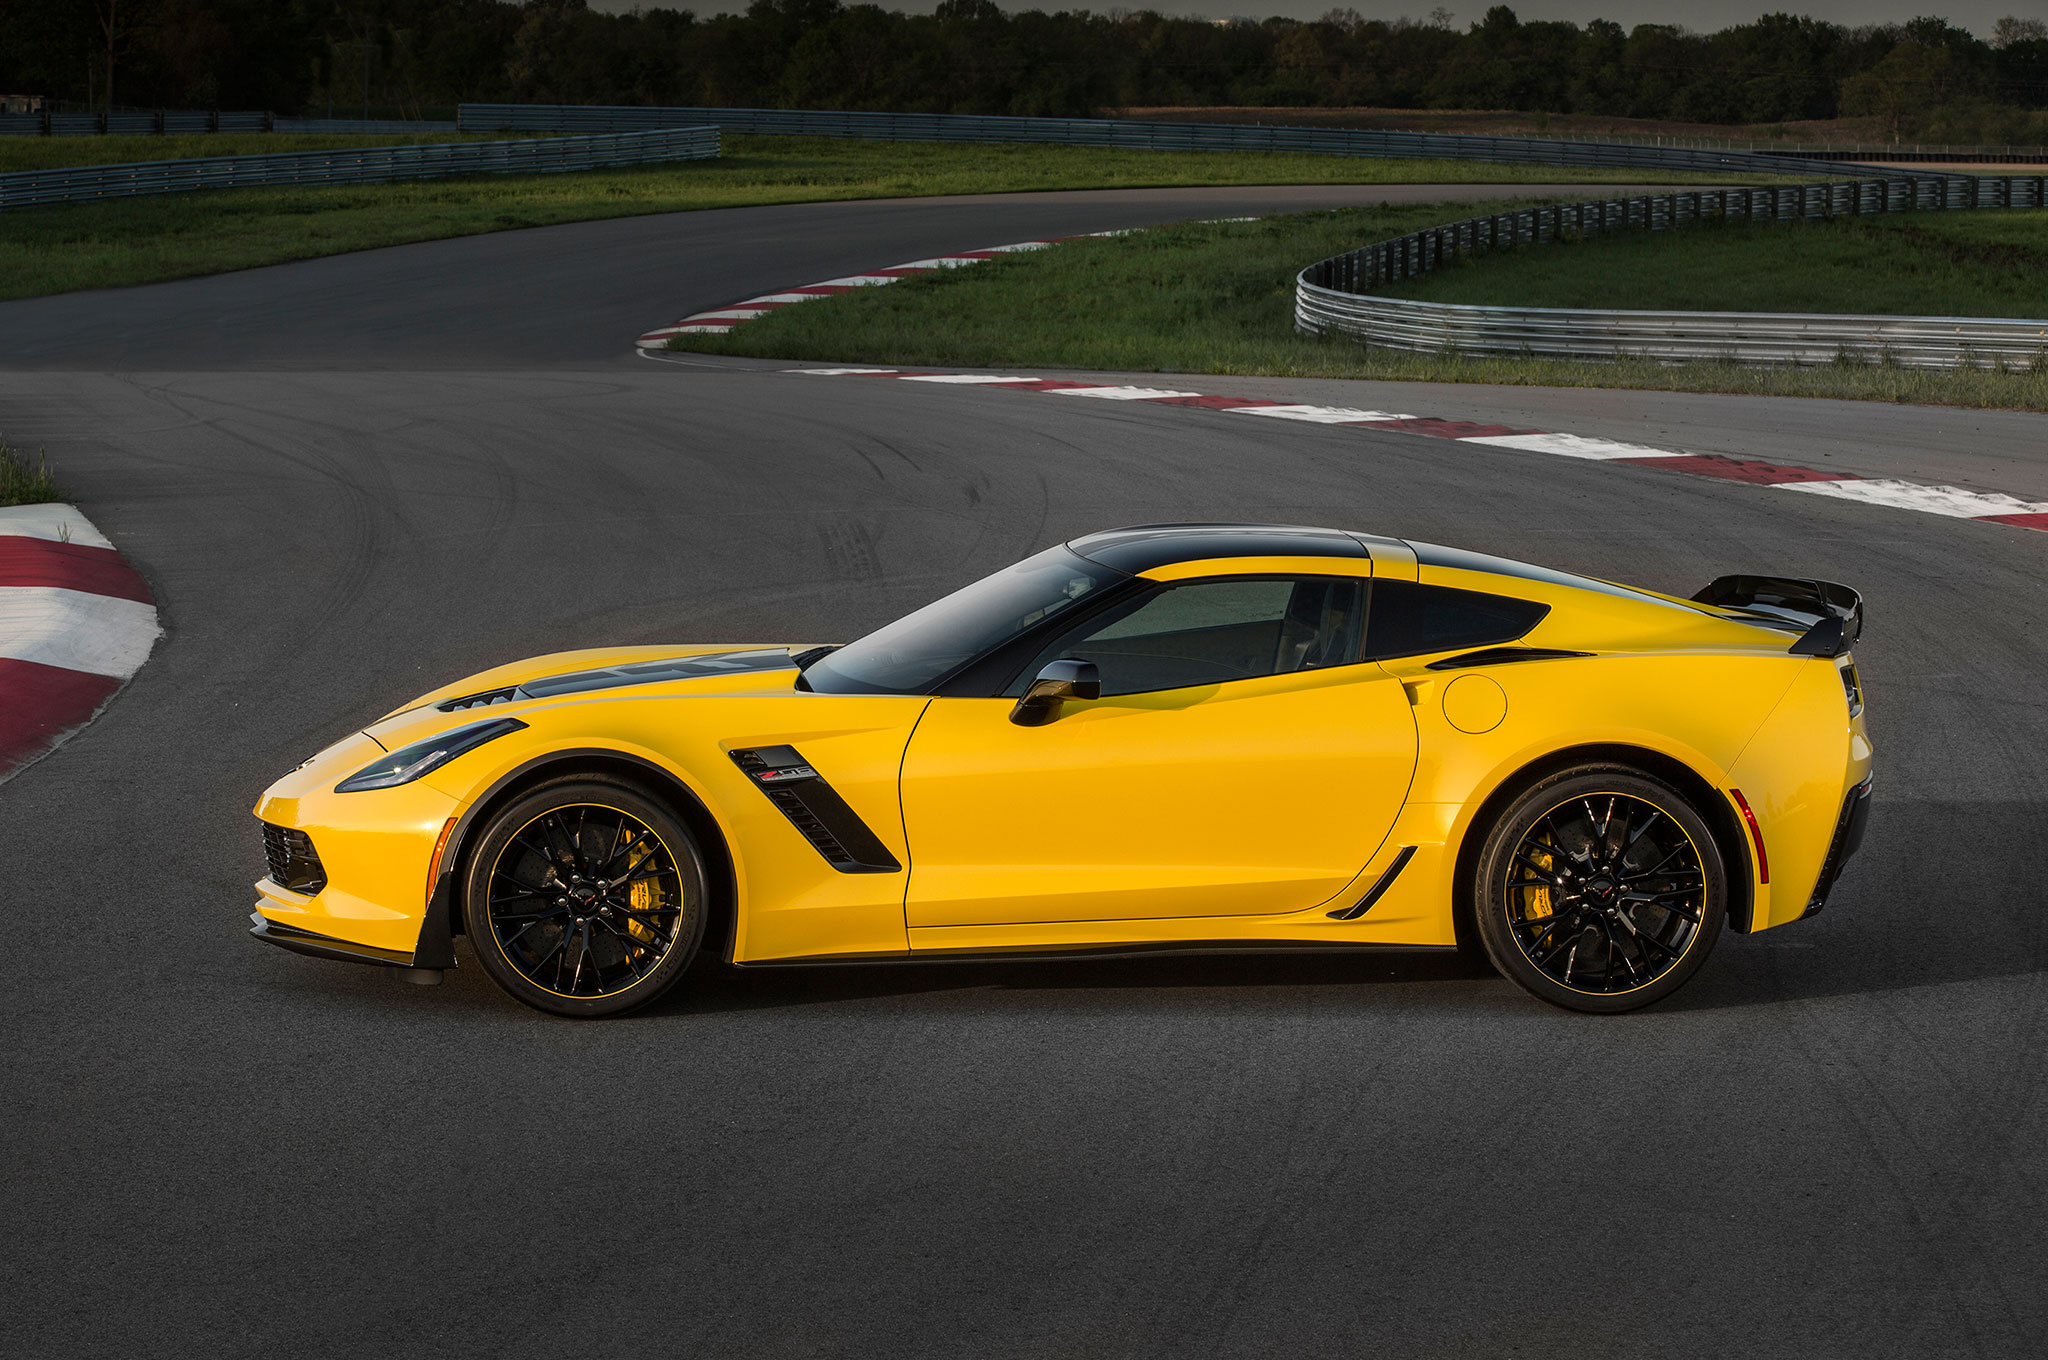 2016 Chevrolet Corvette Z06 Adds Limited-Edition C7.R Appearance Pack